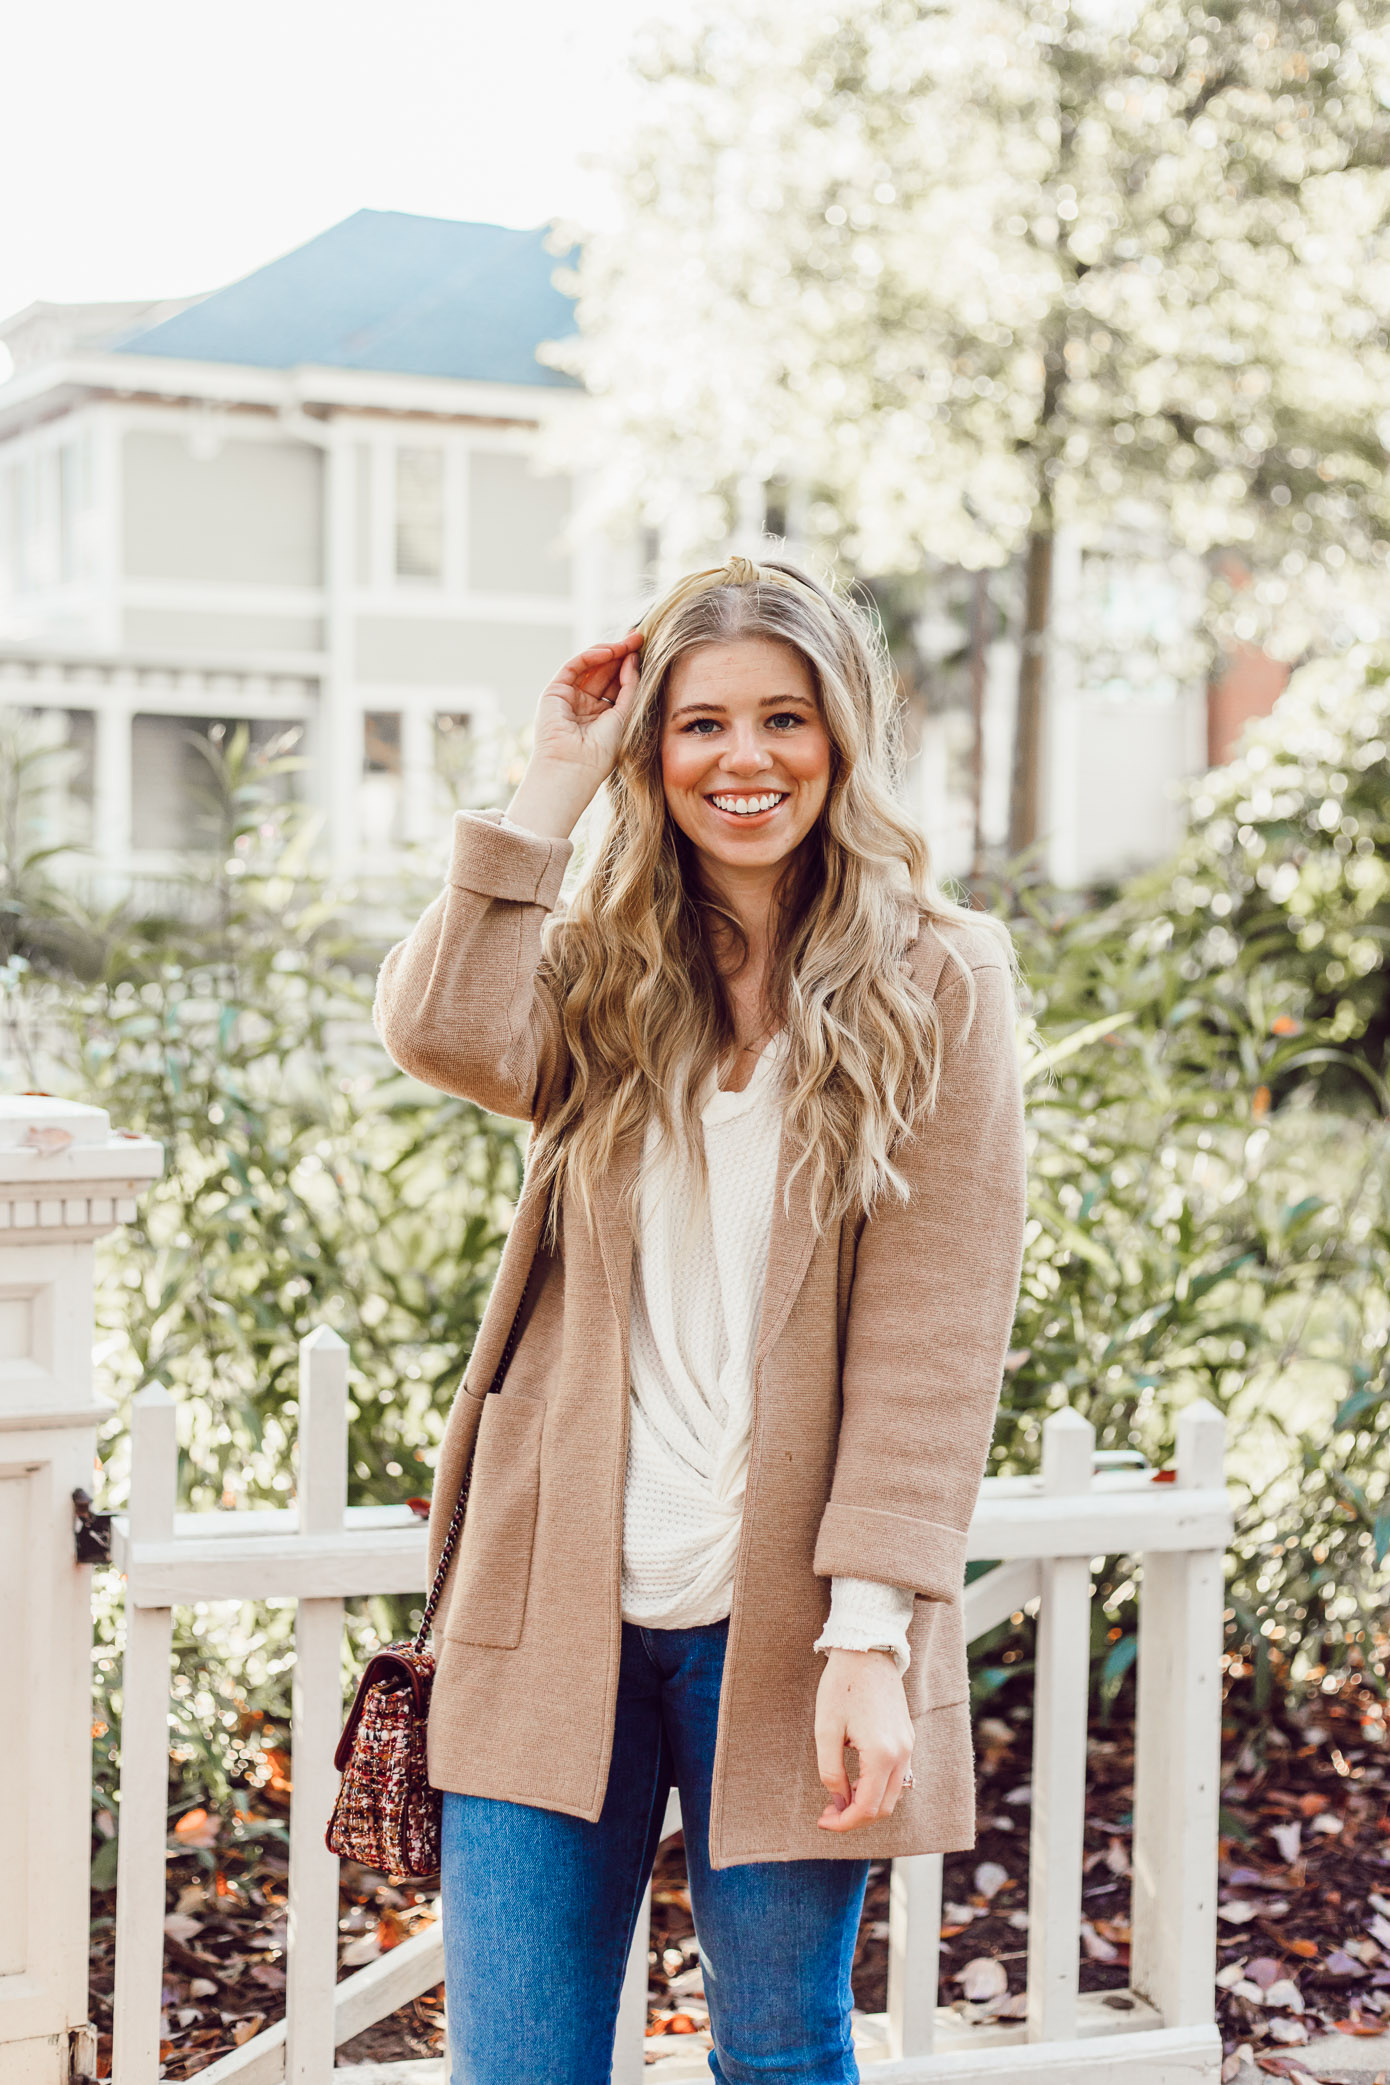 Casual Thanksgiving Outfit Inspiration   Styling a Headband for Fall, Casual Sweater Blazer featured on Louella Reese